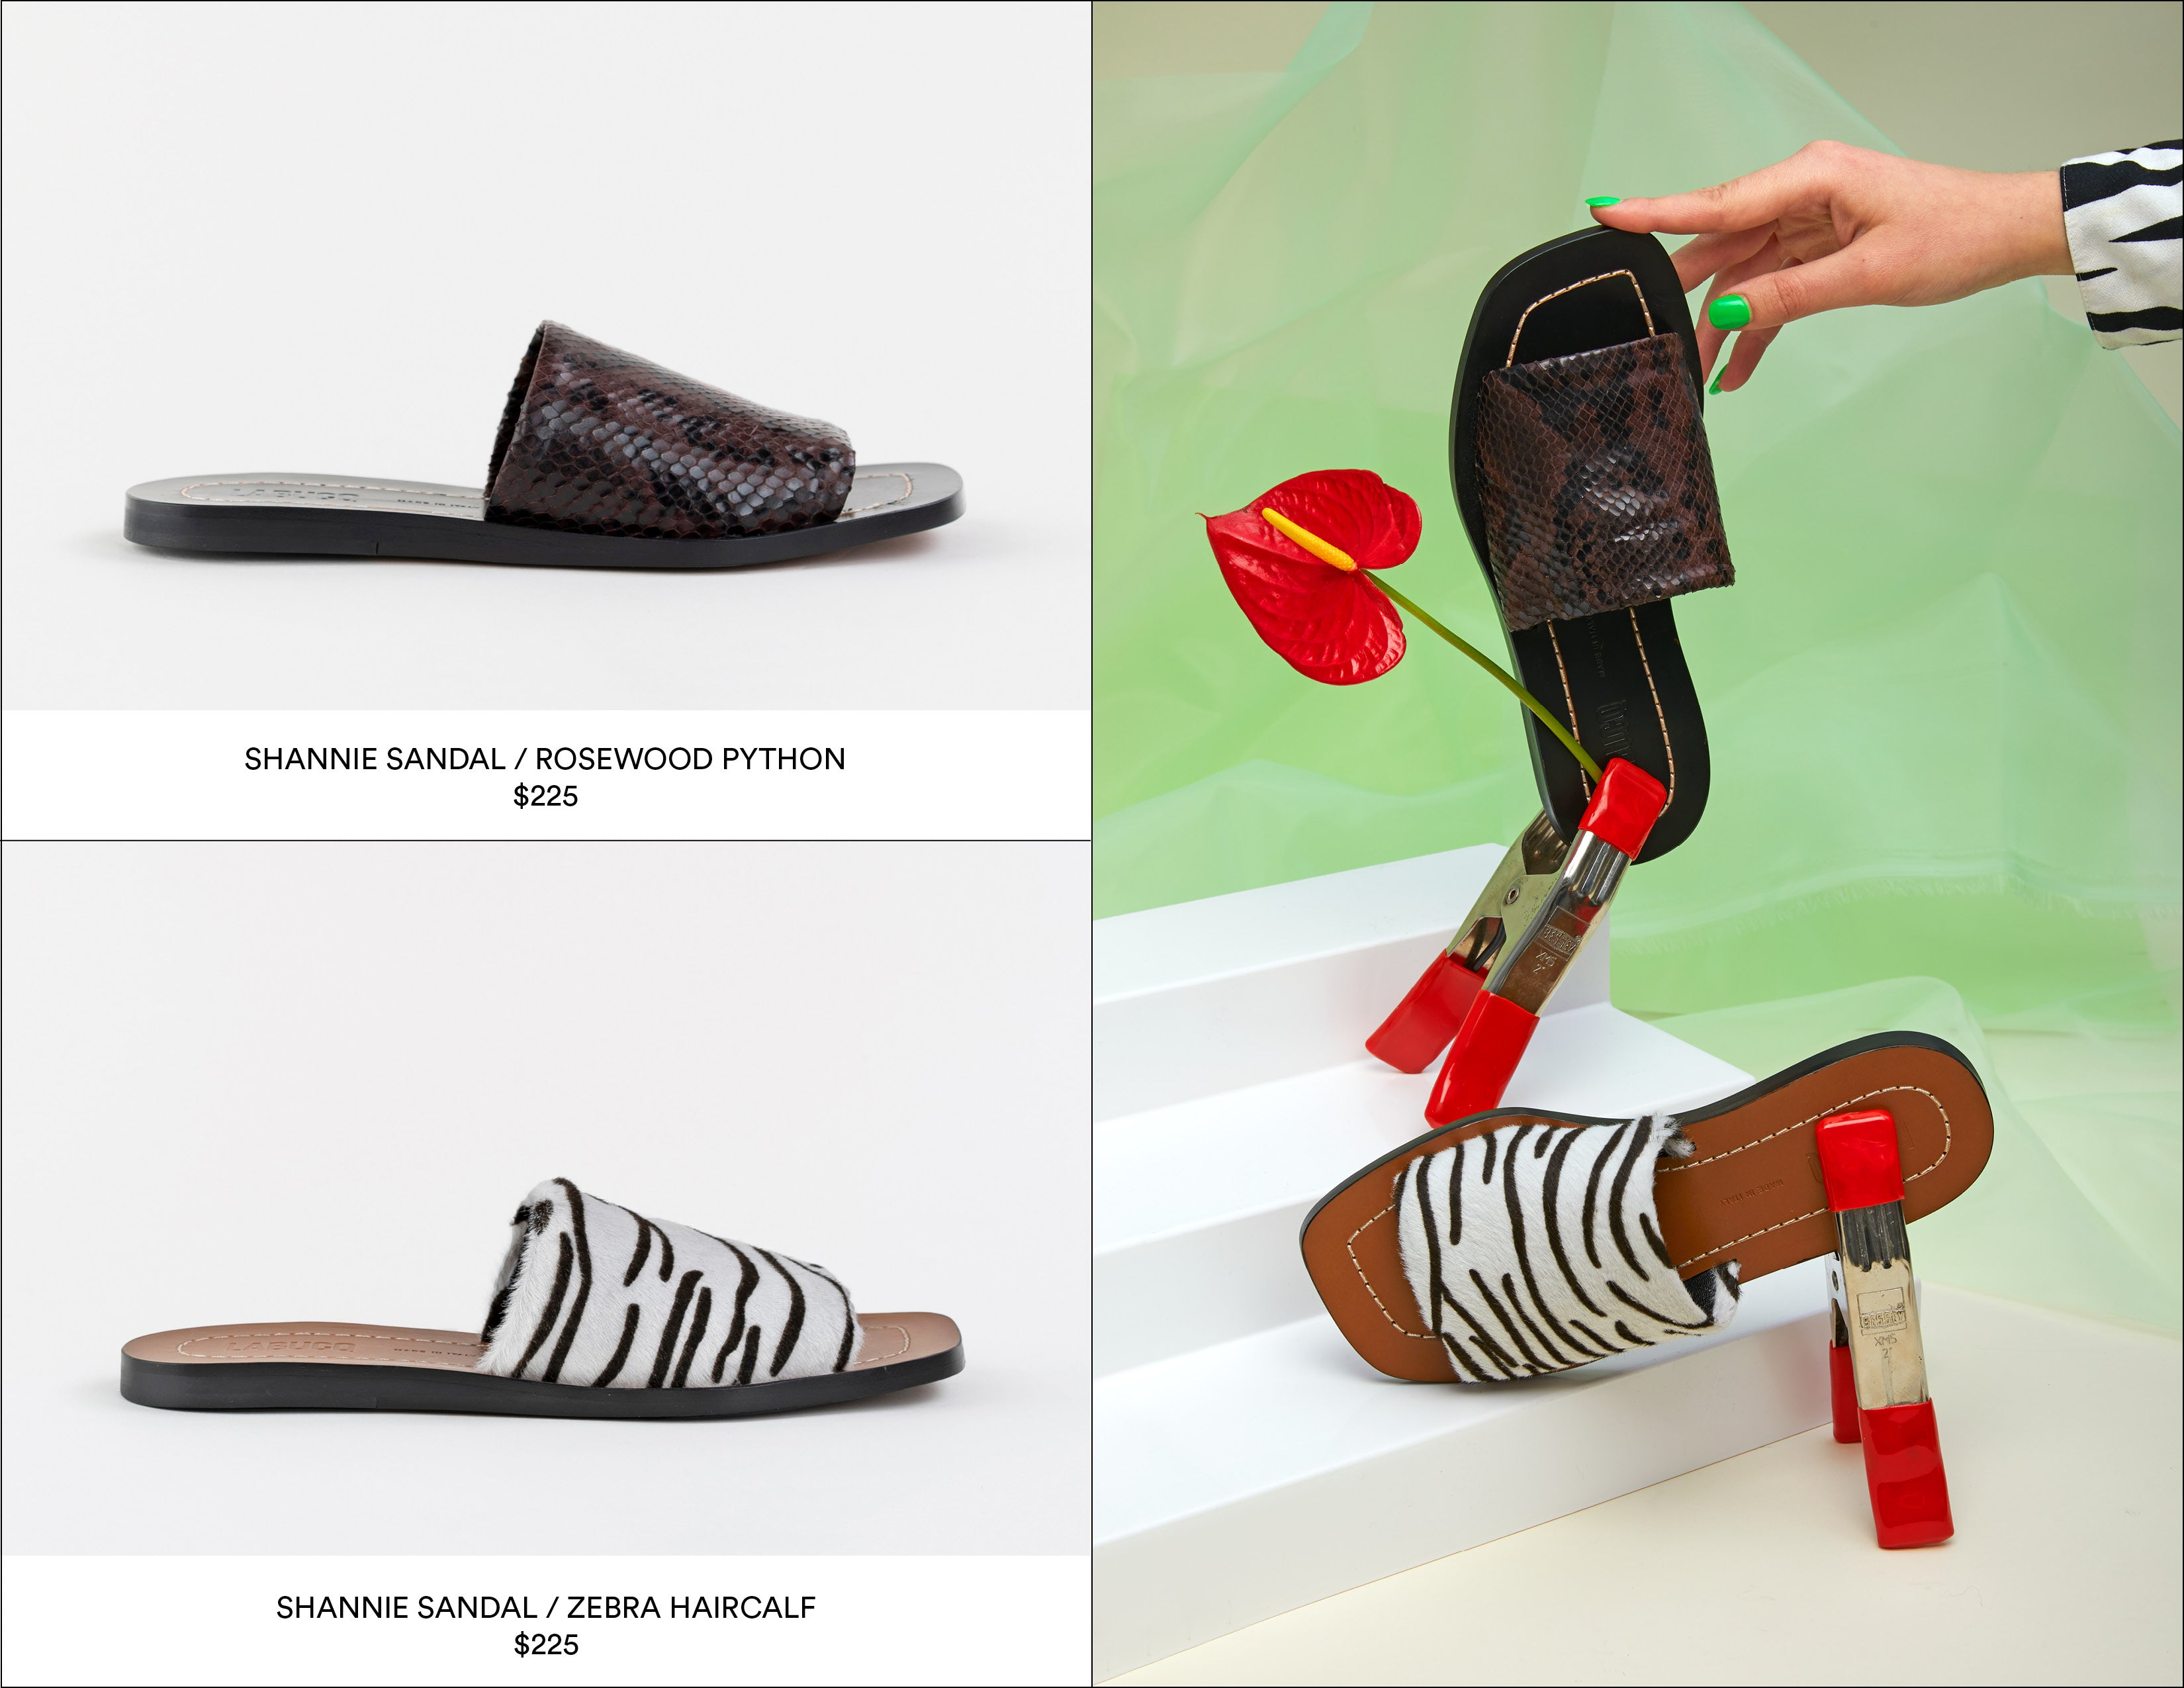 Labucq Shannie Sandal | Rosewood Python and Zebra Haircalf